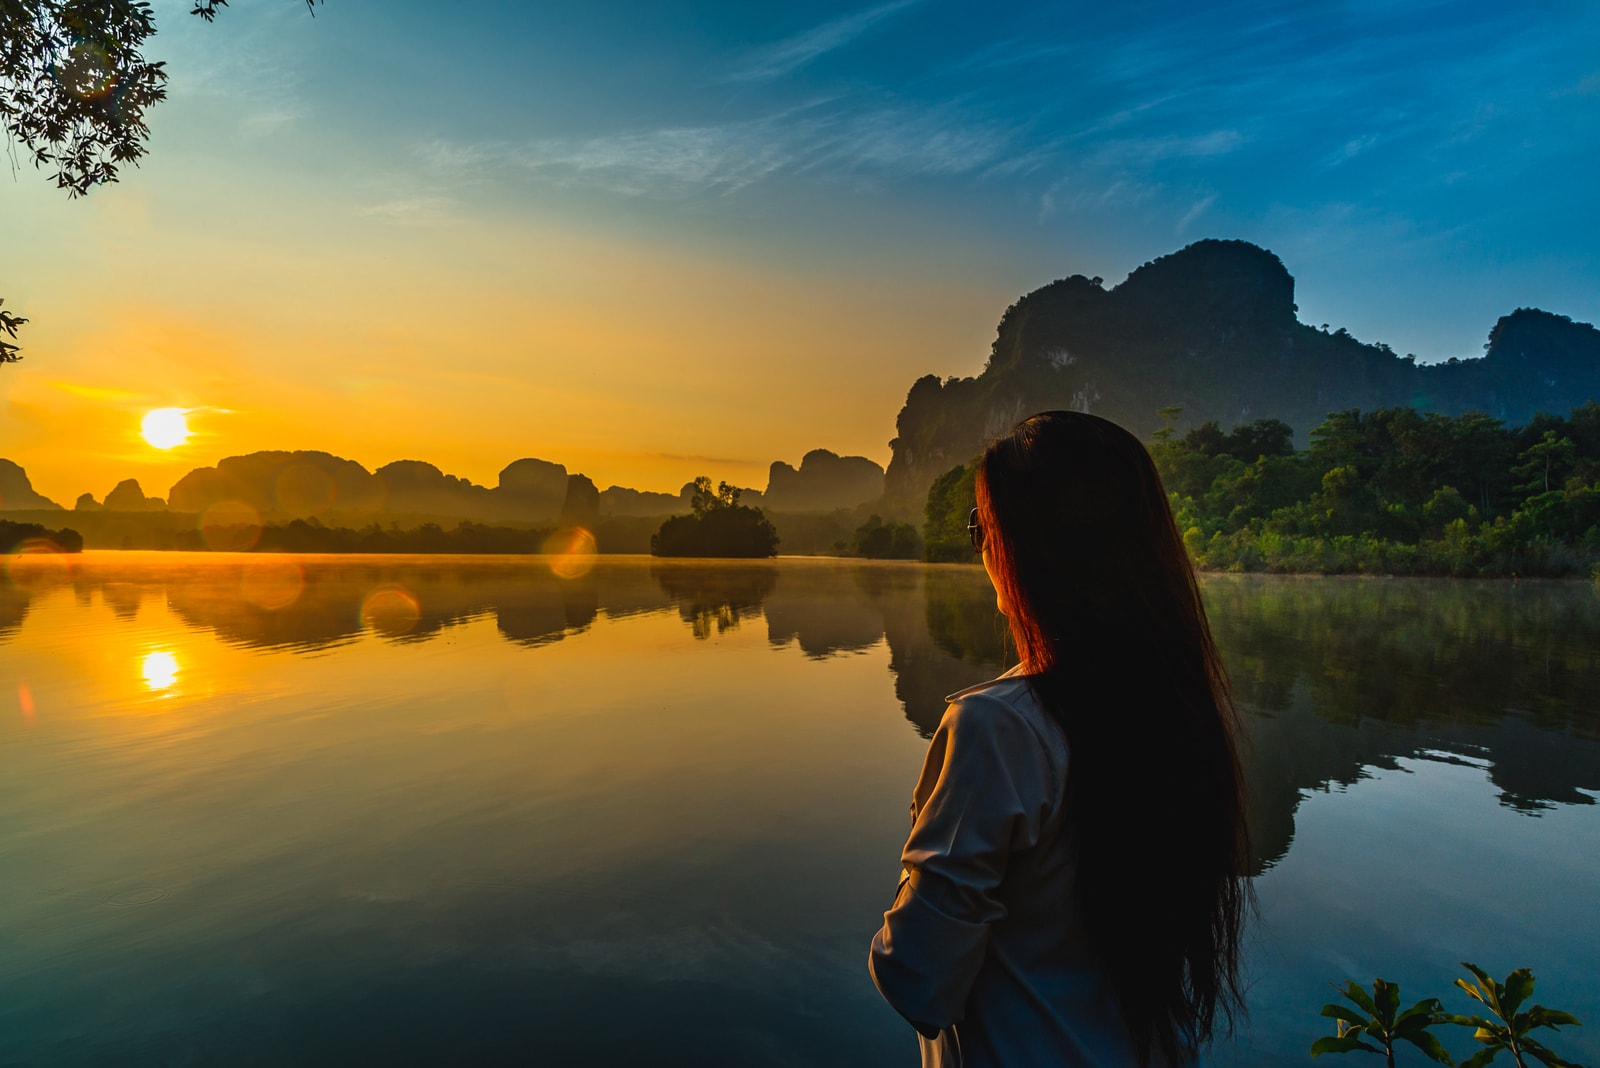 a beautiful woman stands by the lake and watches the sunset